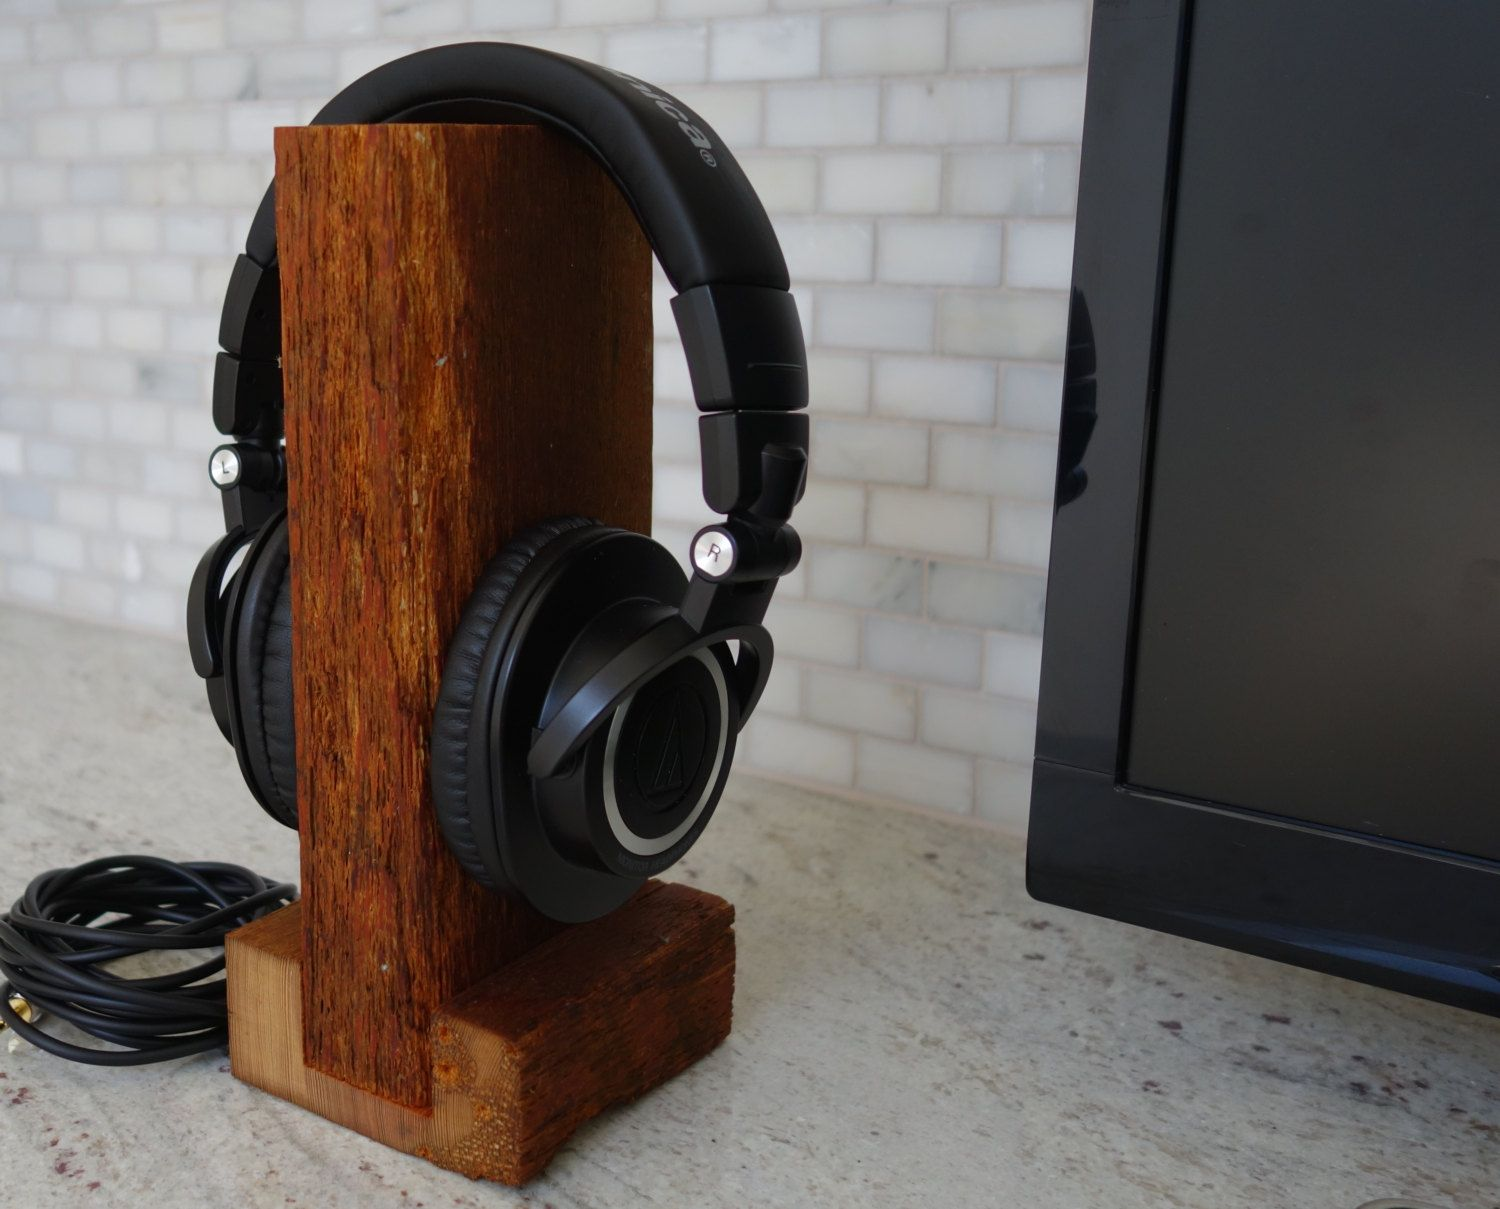 Handmade wood headphone stand the rustic unique tech audiophile gift headphone holder headset stand headset holder